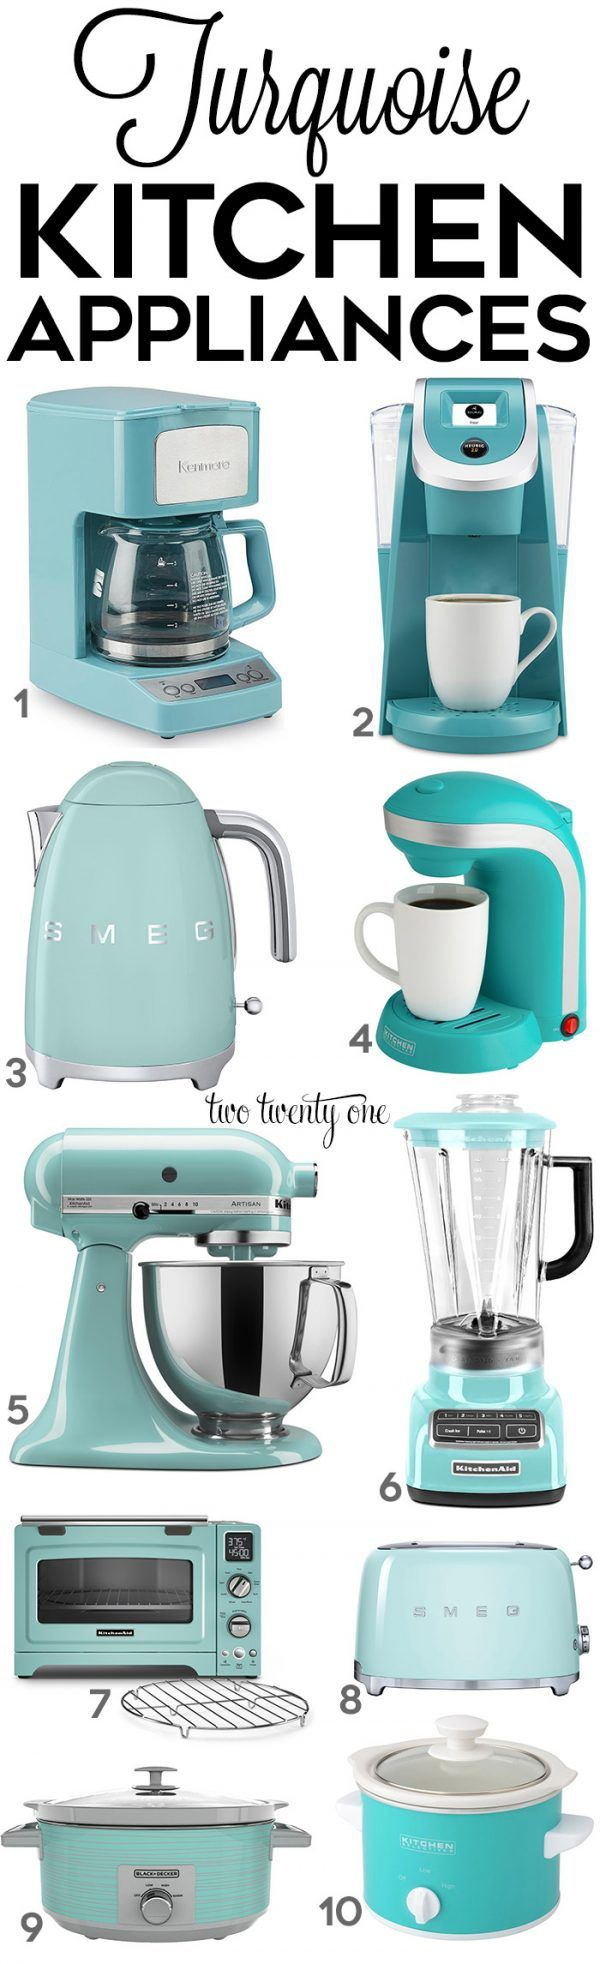 Kitchen small appliances victoria bc - Turquoise Kitchen Decor Appliances